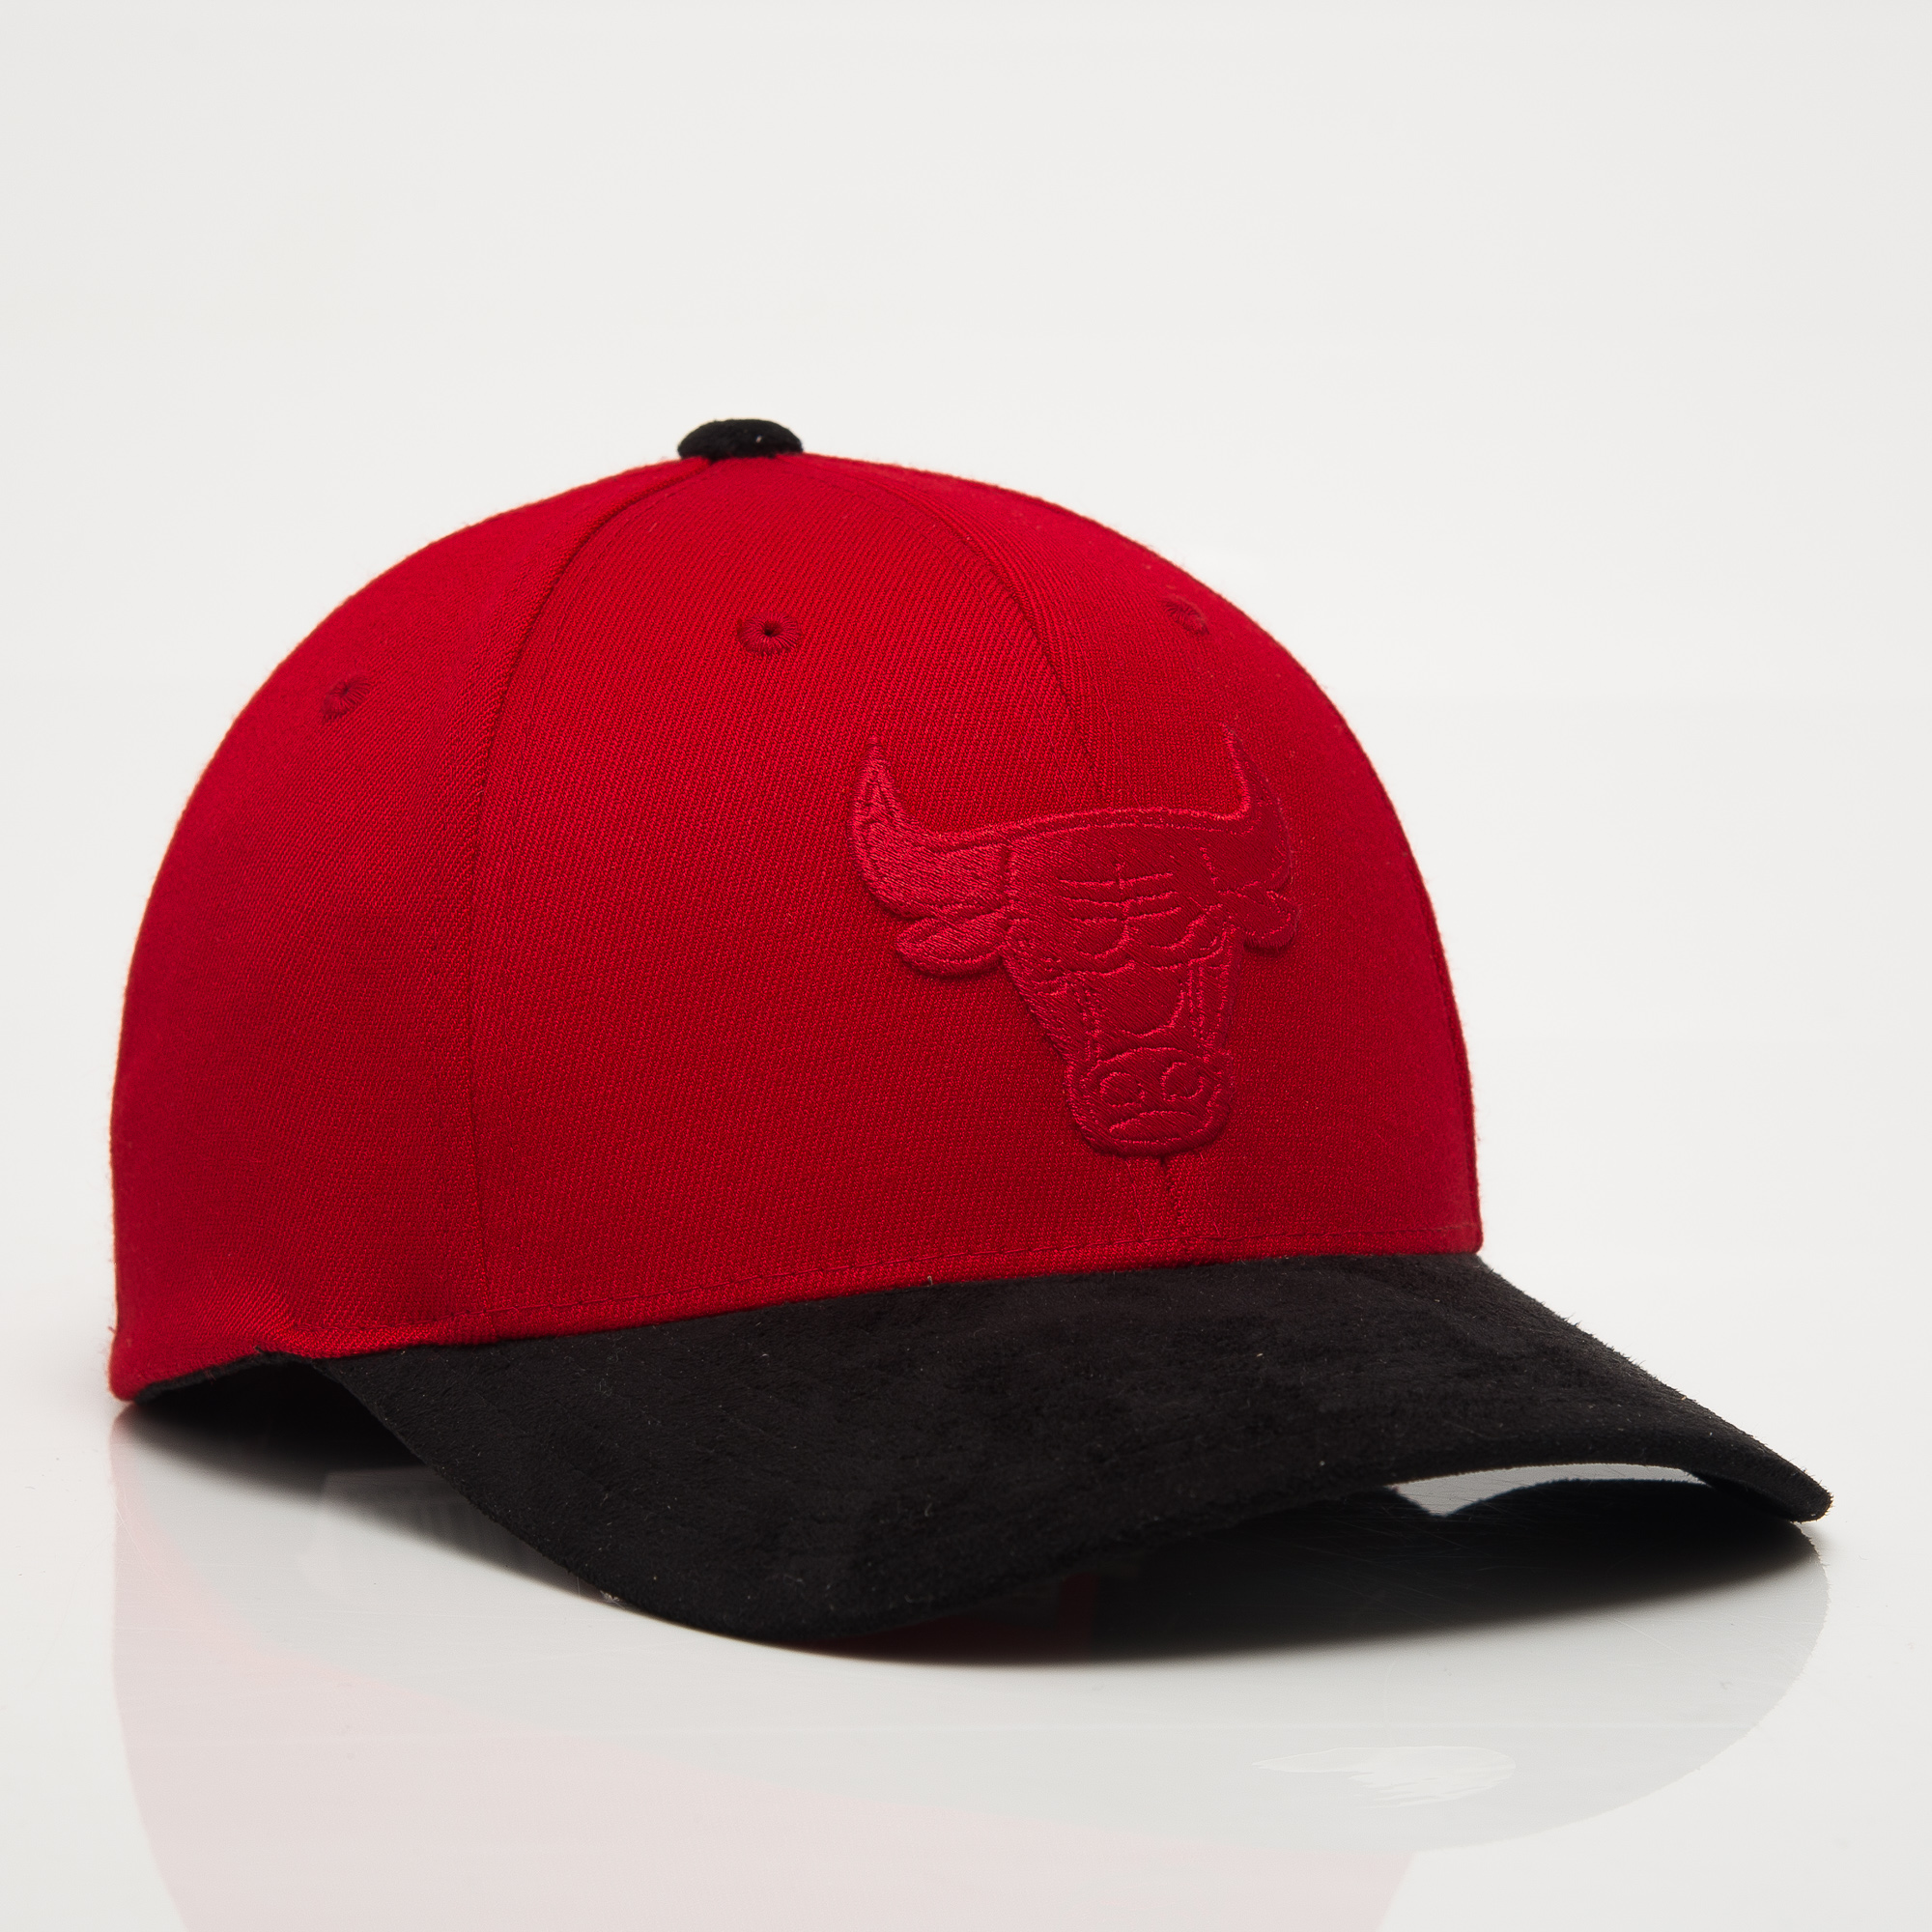 15a68092 Mitchell & Ness NBA Chicago Bulls 3D Suede 110 Snapback cap - NBA Shop Chicago  Bulls Merchandise - Superfanas.lt